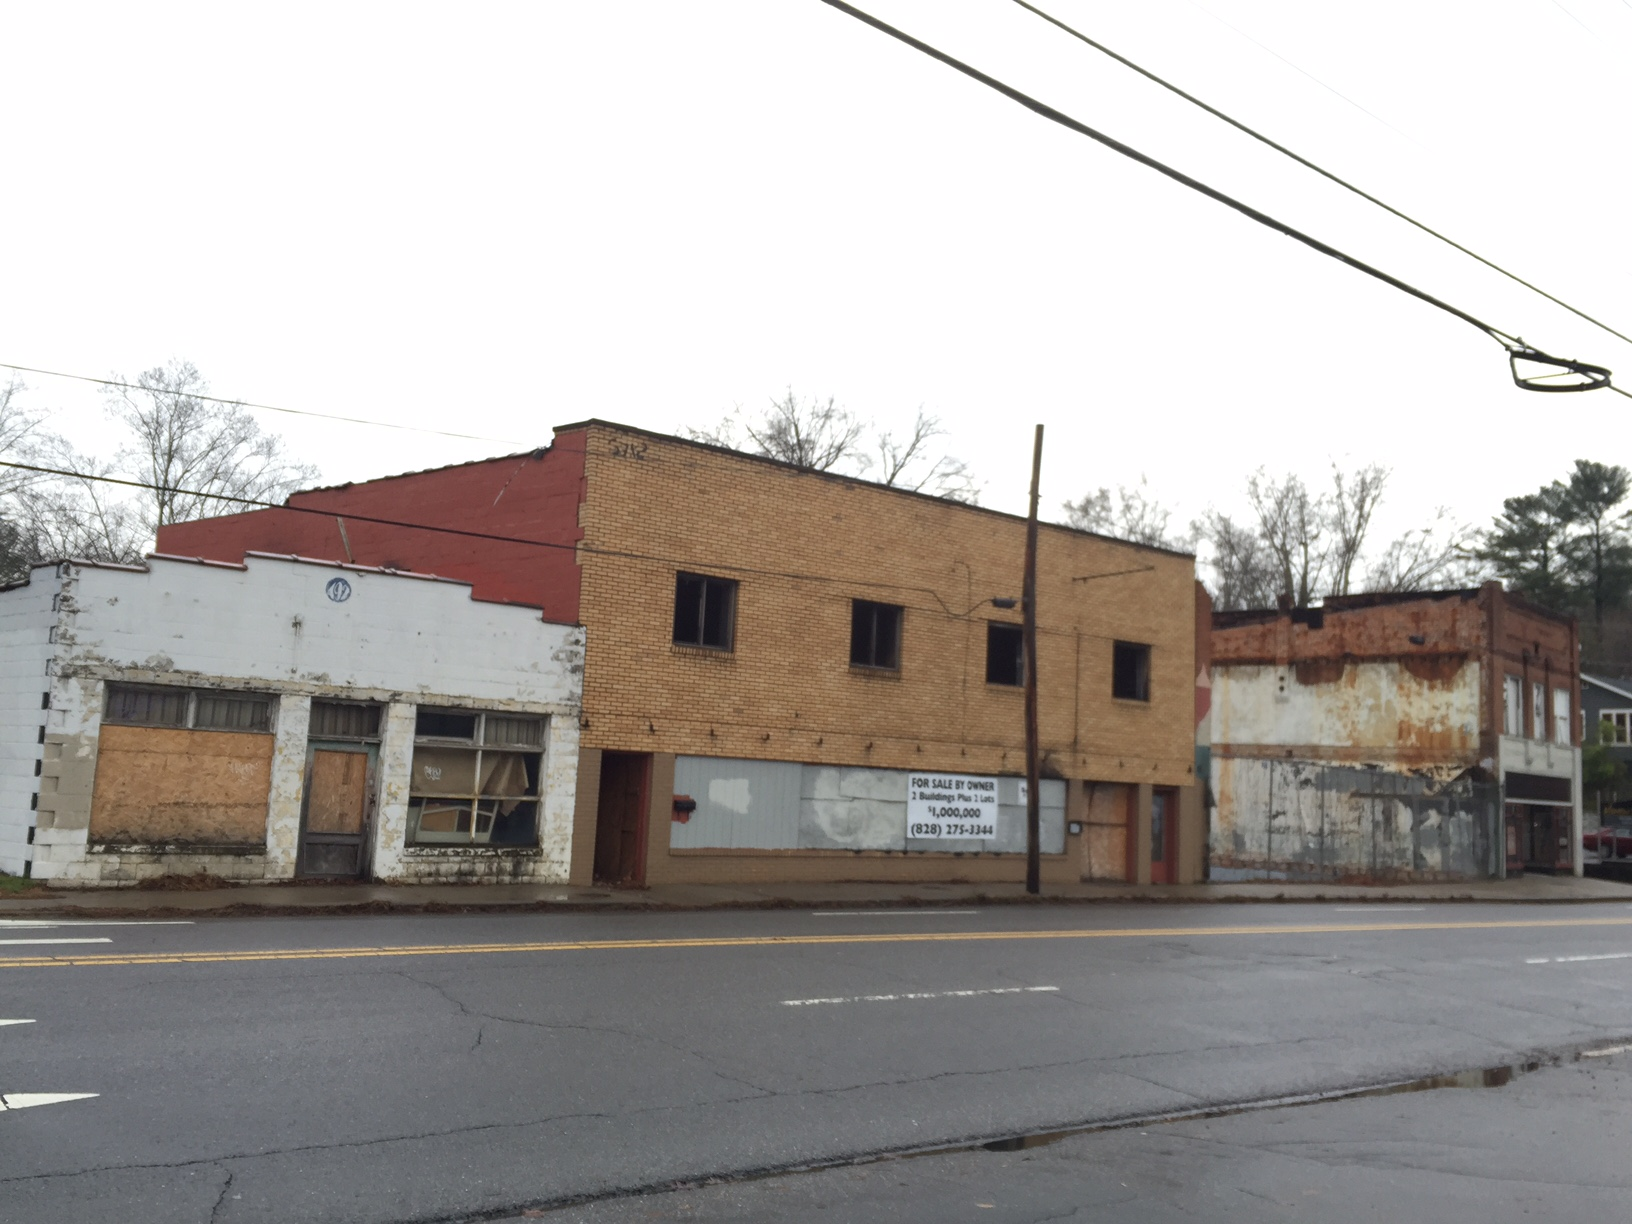 For sale: Dilapidated buildings in prime North Asheville location for $1 million